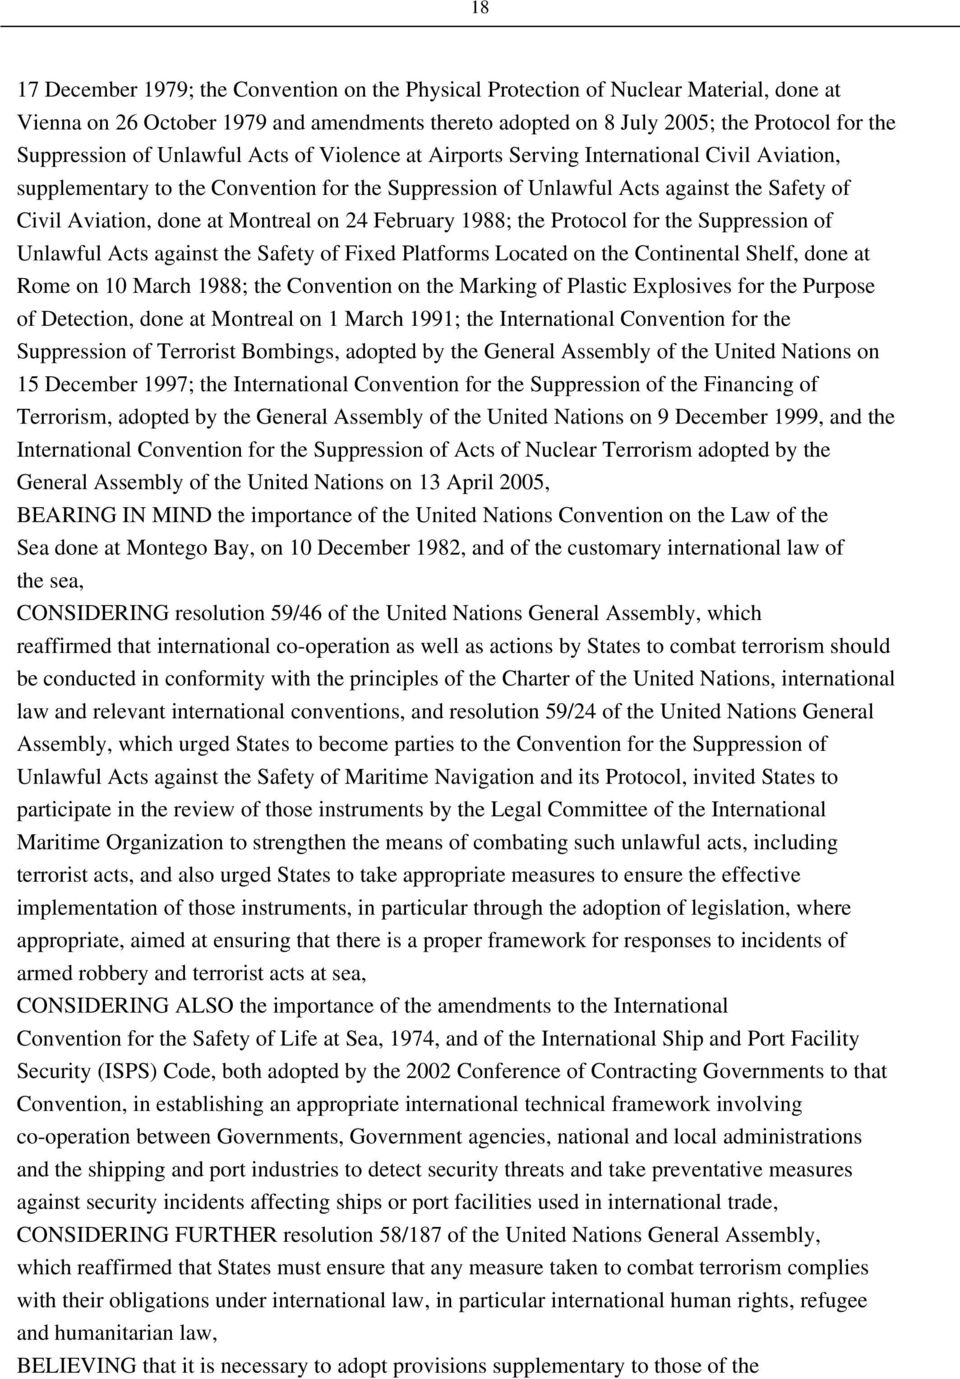 Montreal on 24 February 1988; the Protocol for the Suppression of Unlawful Acts against the Safety of Fixed Platforms Located on the Continental Shelf, done at Rome on 10 March 1988; the Convention